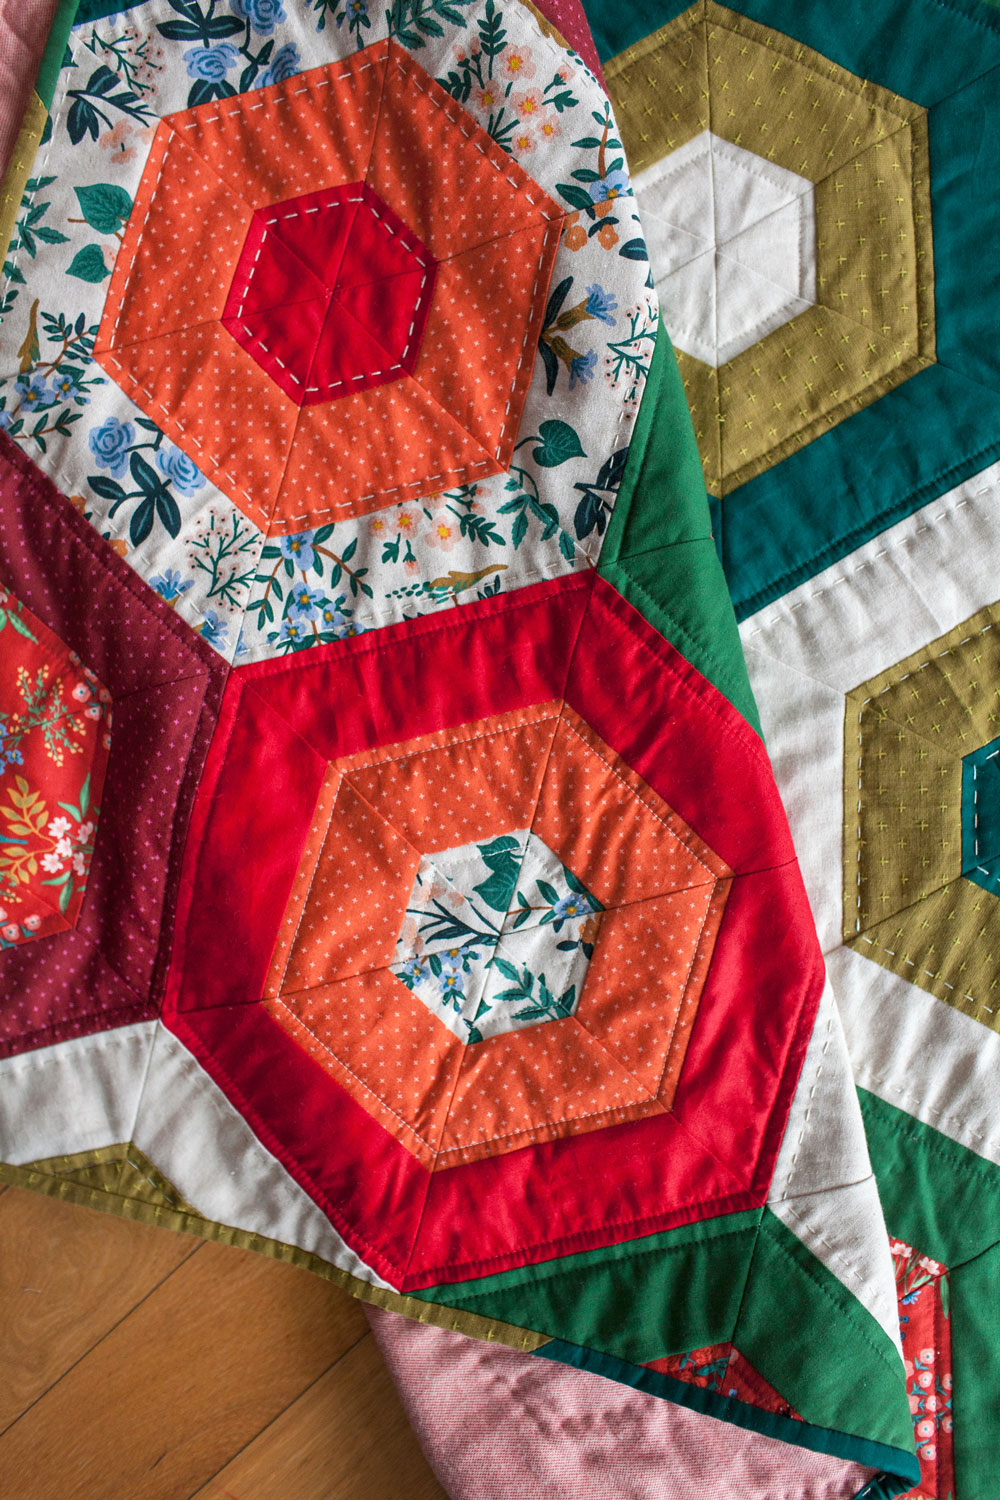 It's easy to get in the holiday spirit and get your Christmas quilting done with a pattern like Hexie Stripe. It's a vintage design with a modern twist! To make a throw all you need are 9 different 1/2 yd. cuts of fabric. Mix red and green solids with some floral prints for a beautifully festive quilt! suzyquilts.com #christmasquilt #hexiequilt